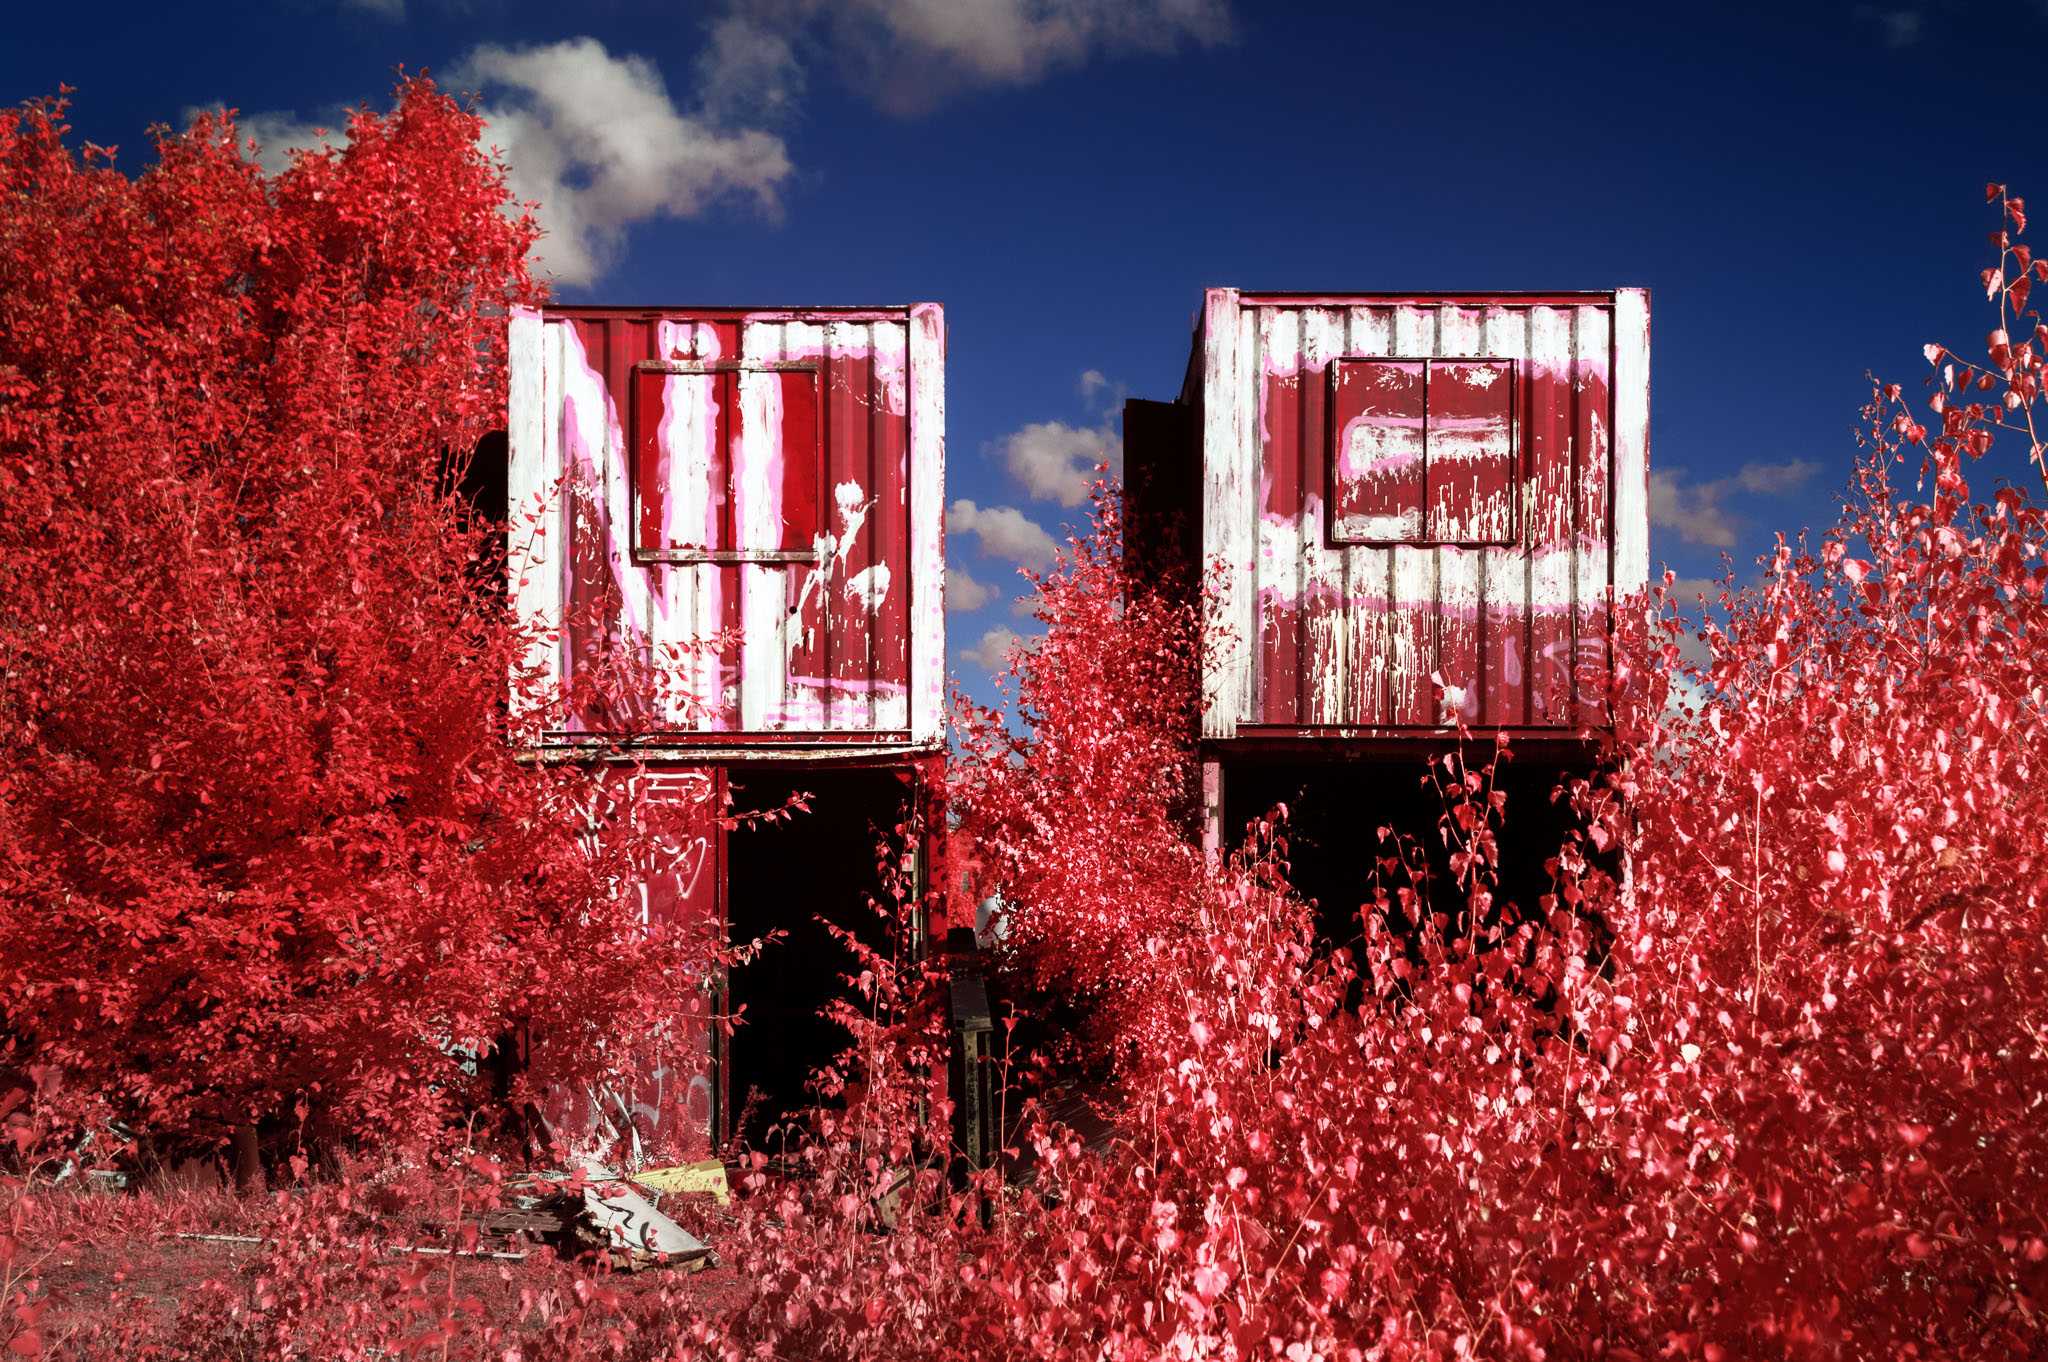 Kodak EIR Colour Infrared, Edgelands, Wasteland, Out of sight,  Shipping containers